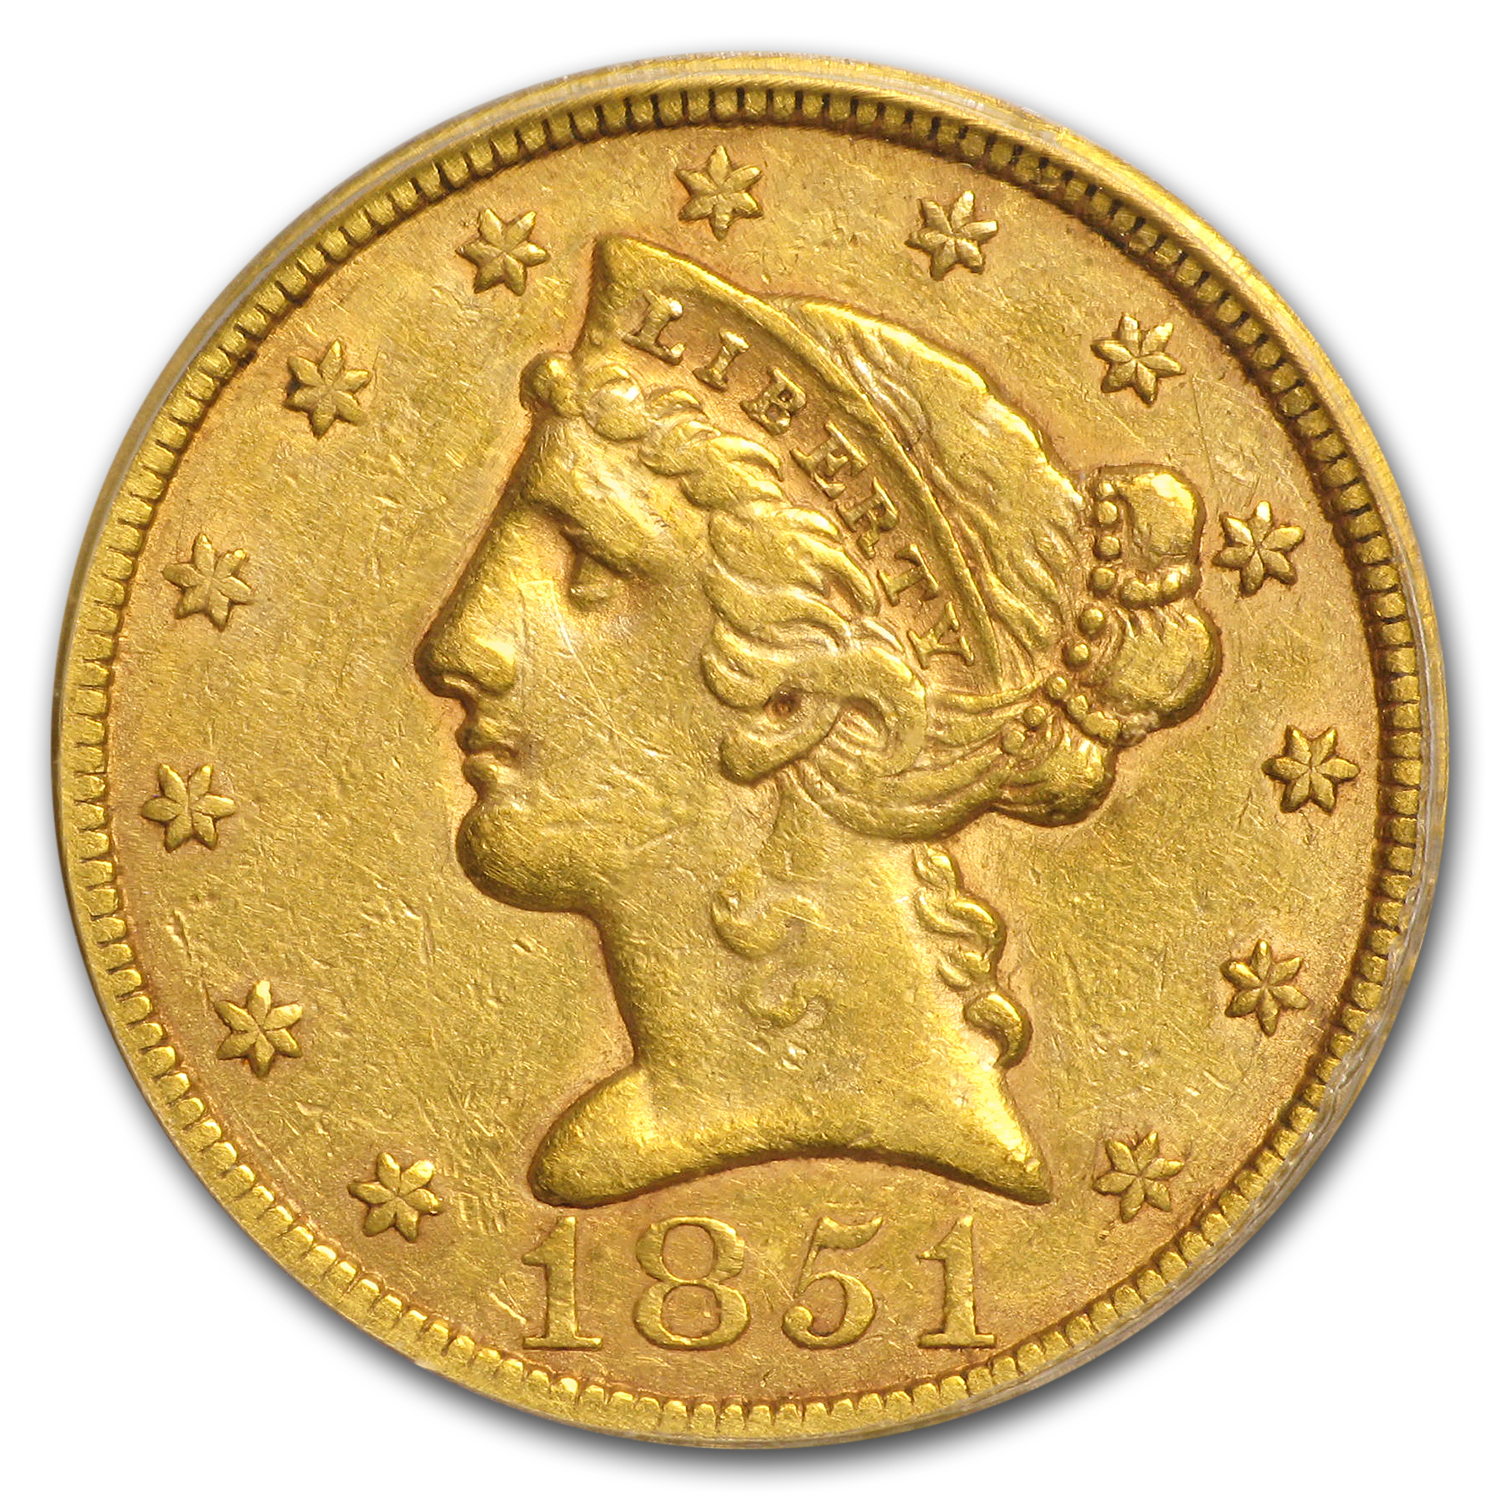 1851 $5 Liberty Gold Half Eagle VF-35 PCGS (Mint Error)